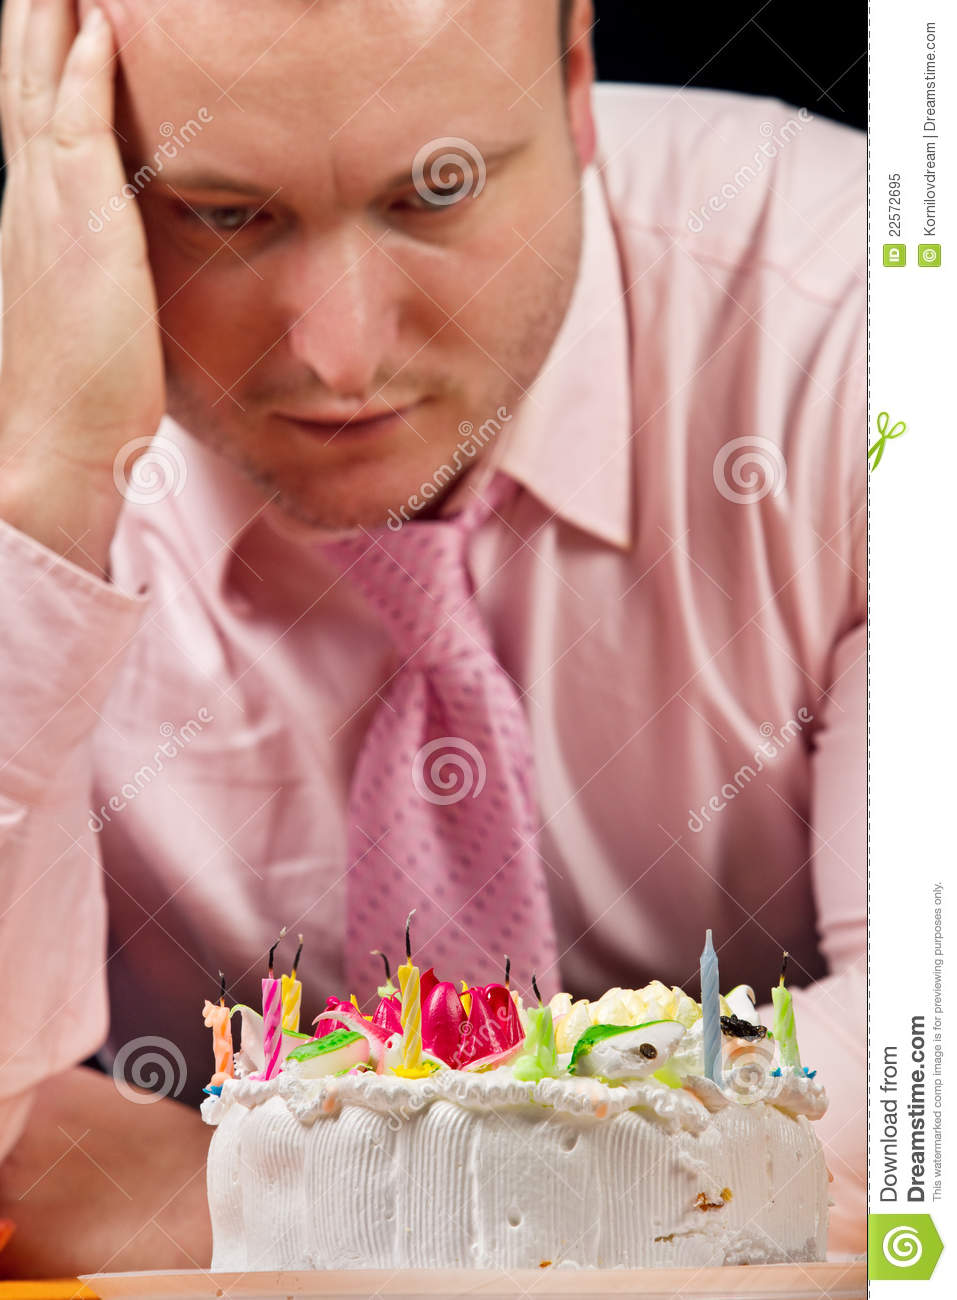 Sad Birthday Royalty Free Stock Photo Image 22572695